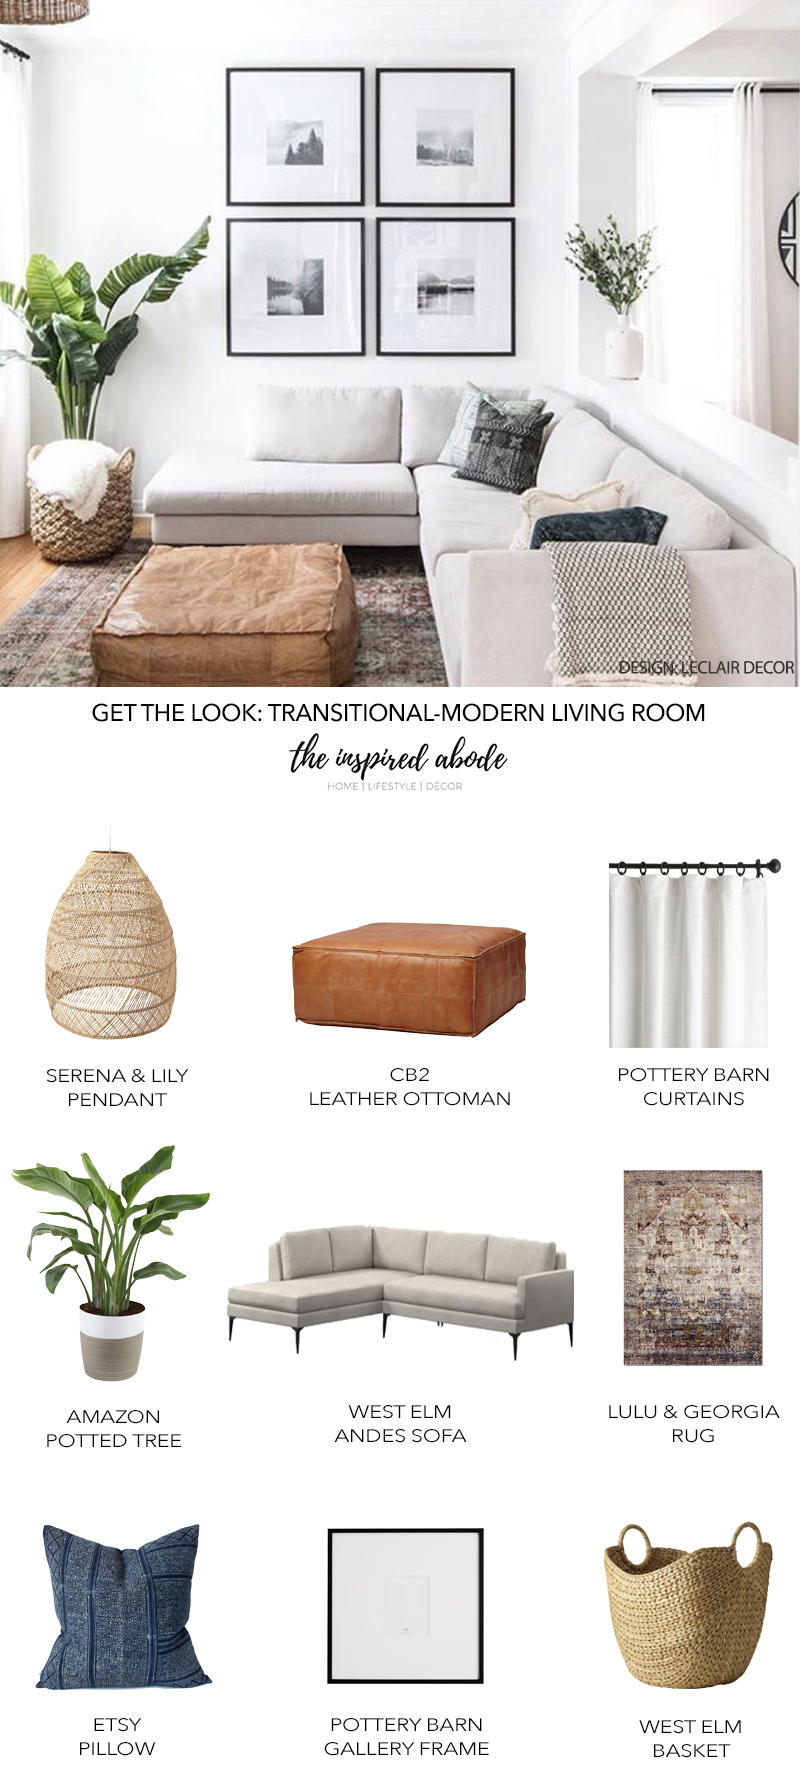 Get the Look: Transitional-Modern Living Room — The Inspired ...